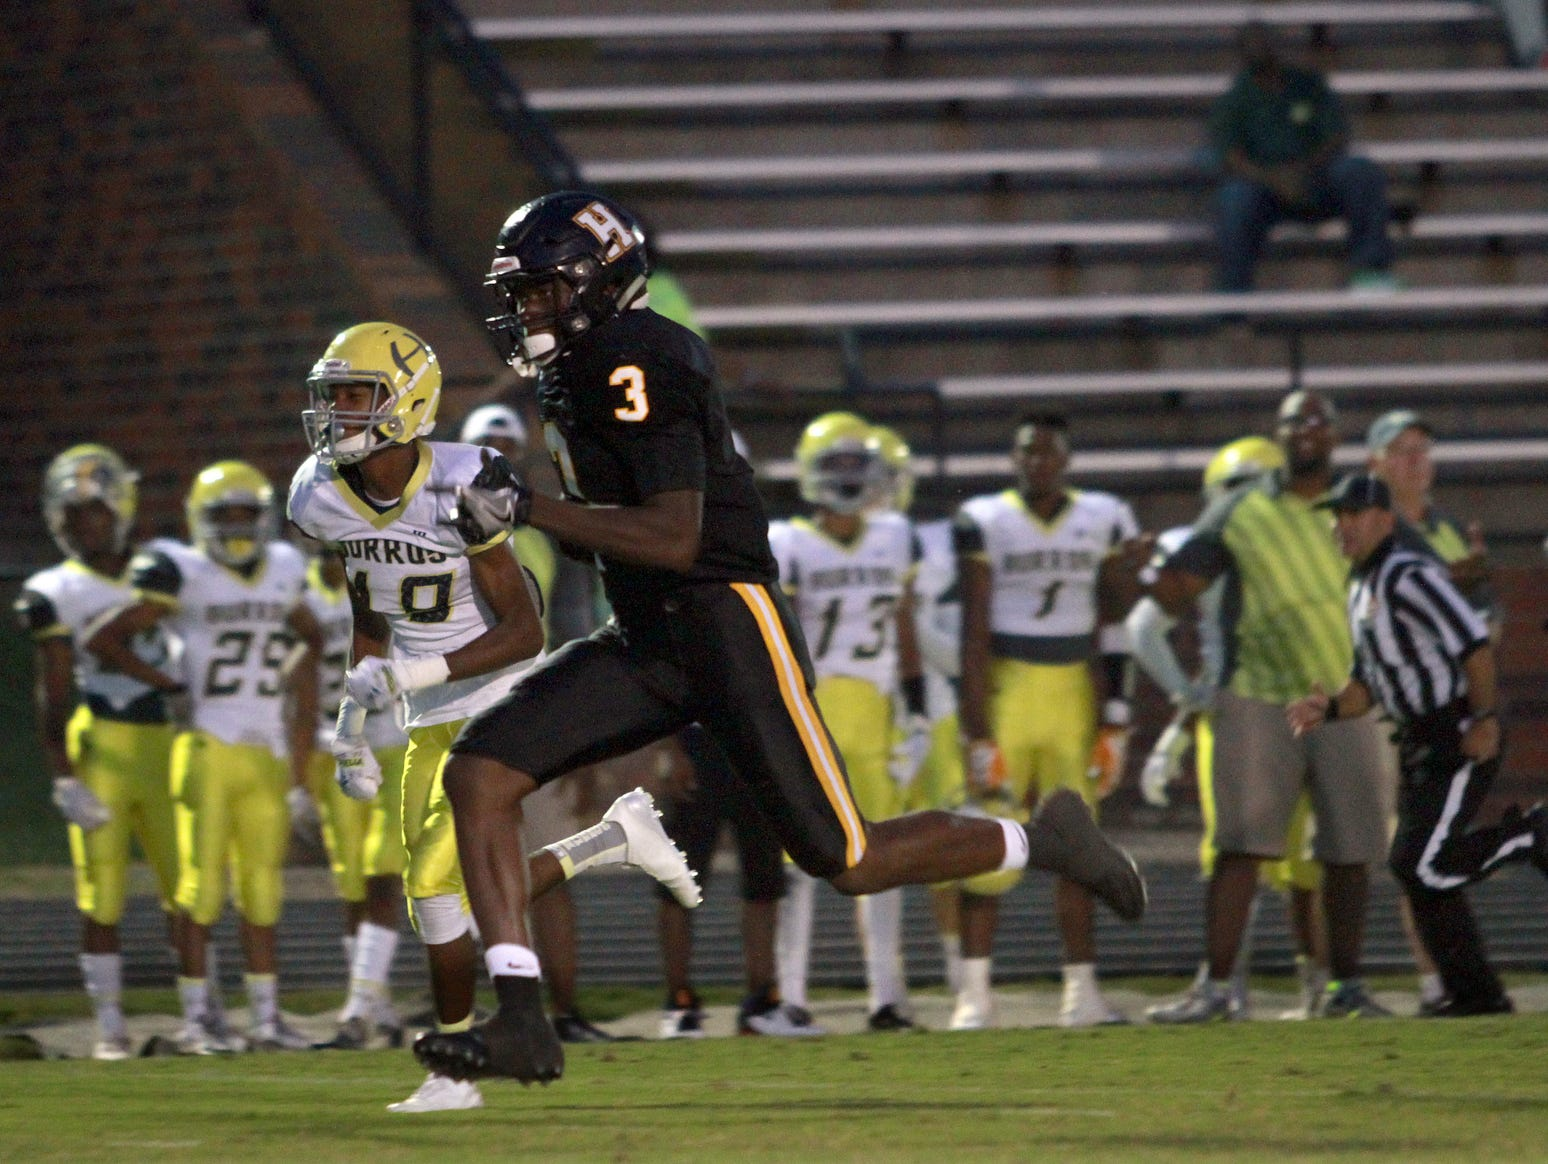 Hendersonville's Anthony Hughes rushes past Hillboro's Antwuan Gooner on his way to a touchdown in Hendersonville, TN on Fri. Sept. 16, 2016. Photo by Dave Cardaciotto